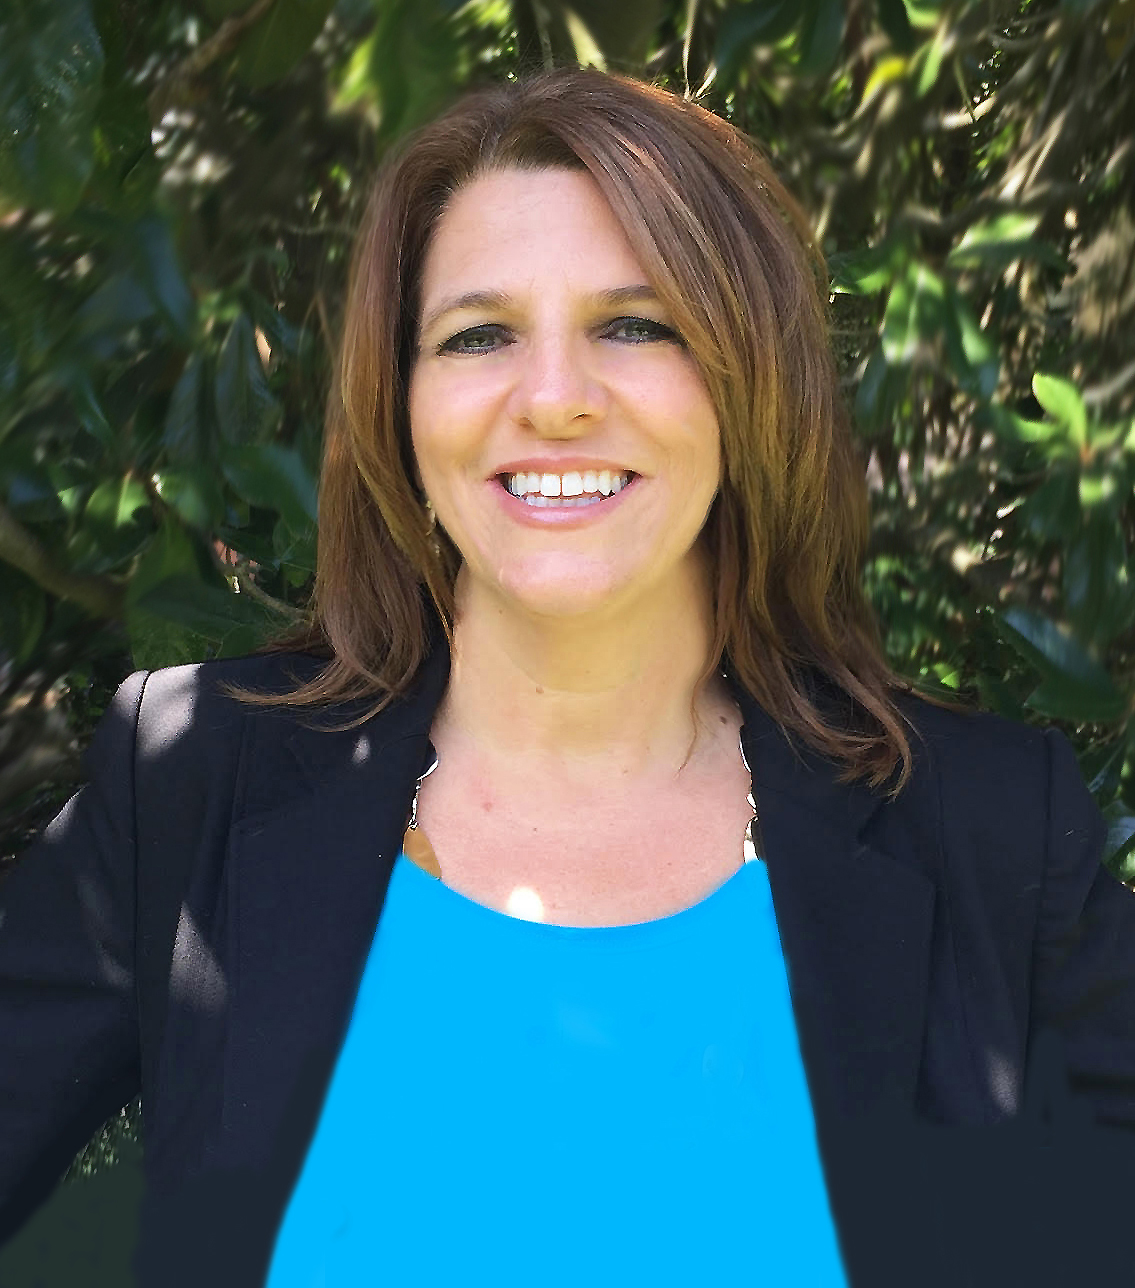 Marie, the jack of all trades, has a background in child psychology, human resources and cosmetology. Although she comes from such a diverse background, Marie found herself very passionate about the service industry. She has worked in Food and Beverage for the Radisson Hotel, Walt Disney World, and Interlachen Country Club. Marie serves as the right-hand for many of our event designers. Marie is committed to using her deep understanding of the industry to create beautiful, flawlessly executrix events to Arthur's. An Indiana girl, Marie enjoys going to the beach, cooking with her kids, and listening to live music. She is the mother of two boys and is their biggest cheerleader at all their concerts and sporting events.